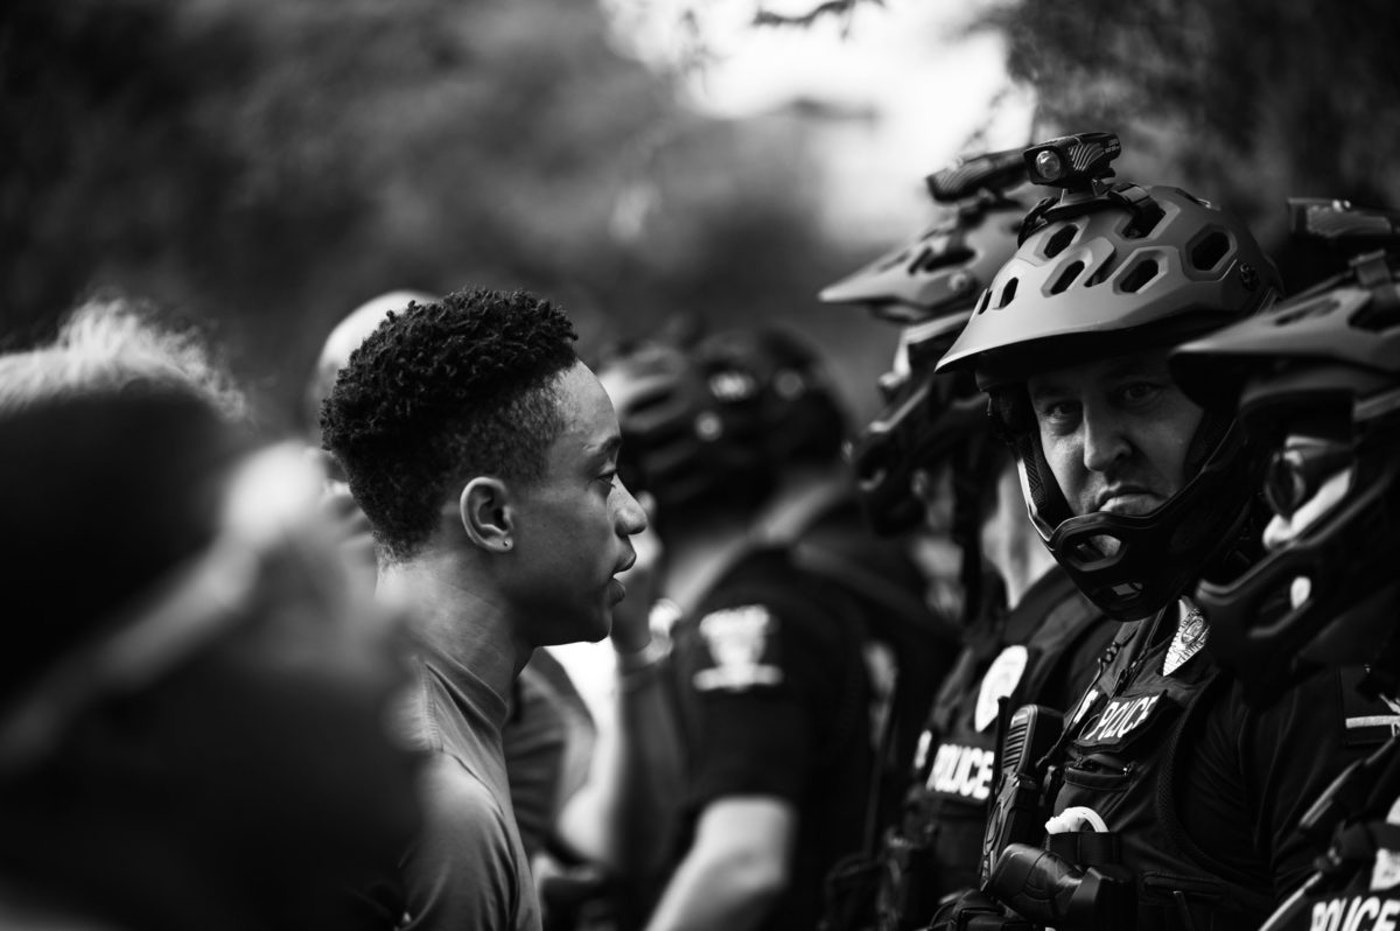 Anti-Trump protesters clashed with counterprotesters and police outside of the Republican National Convention Monday in Charlotte. Our reporter witnessed police using their bikes as weapons against demonstrators and pepper spraying one young man. (Image for Cardinal & Pine by Alvin Jacobs Jr.)